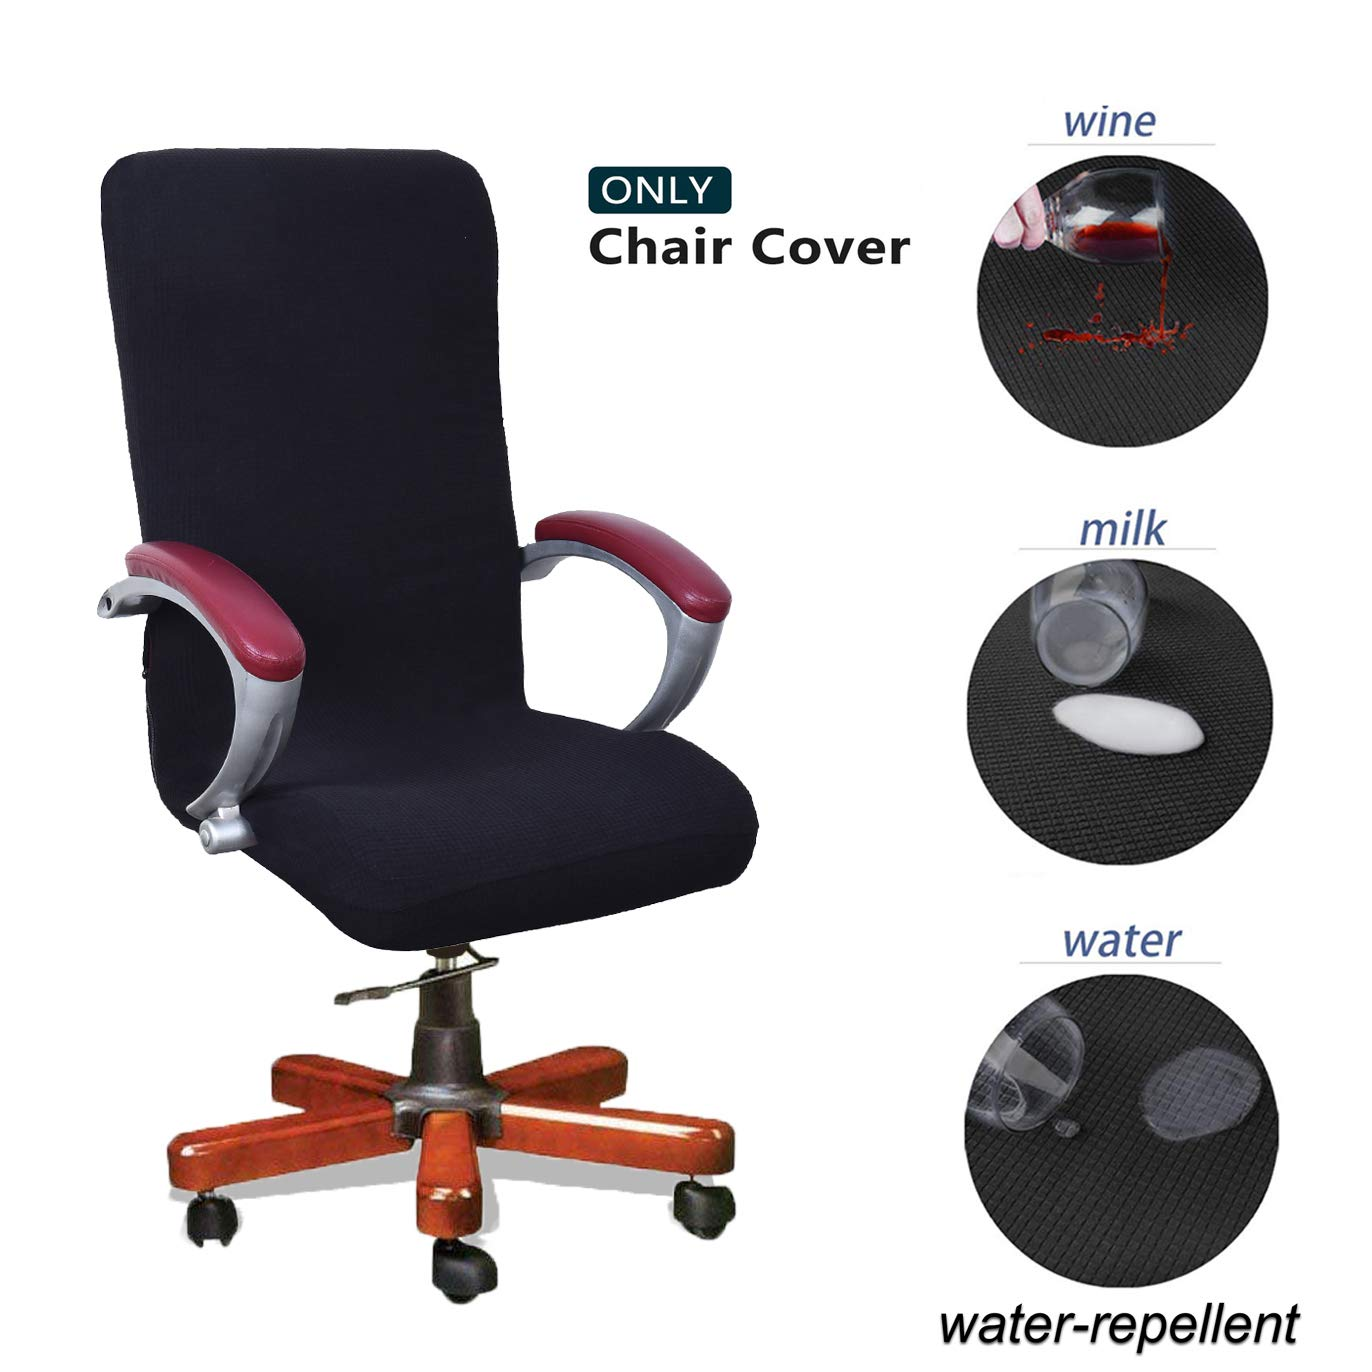 WOMACO Waterproof Office Chair Cover, Jacquard Computer Office Chair Covers Water-Repellent Universal Boss Chair Covers Modern Simplism Style High Back Chair Slipcover (Black, Large)